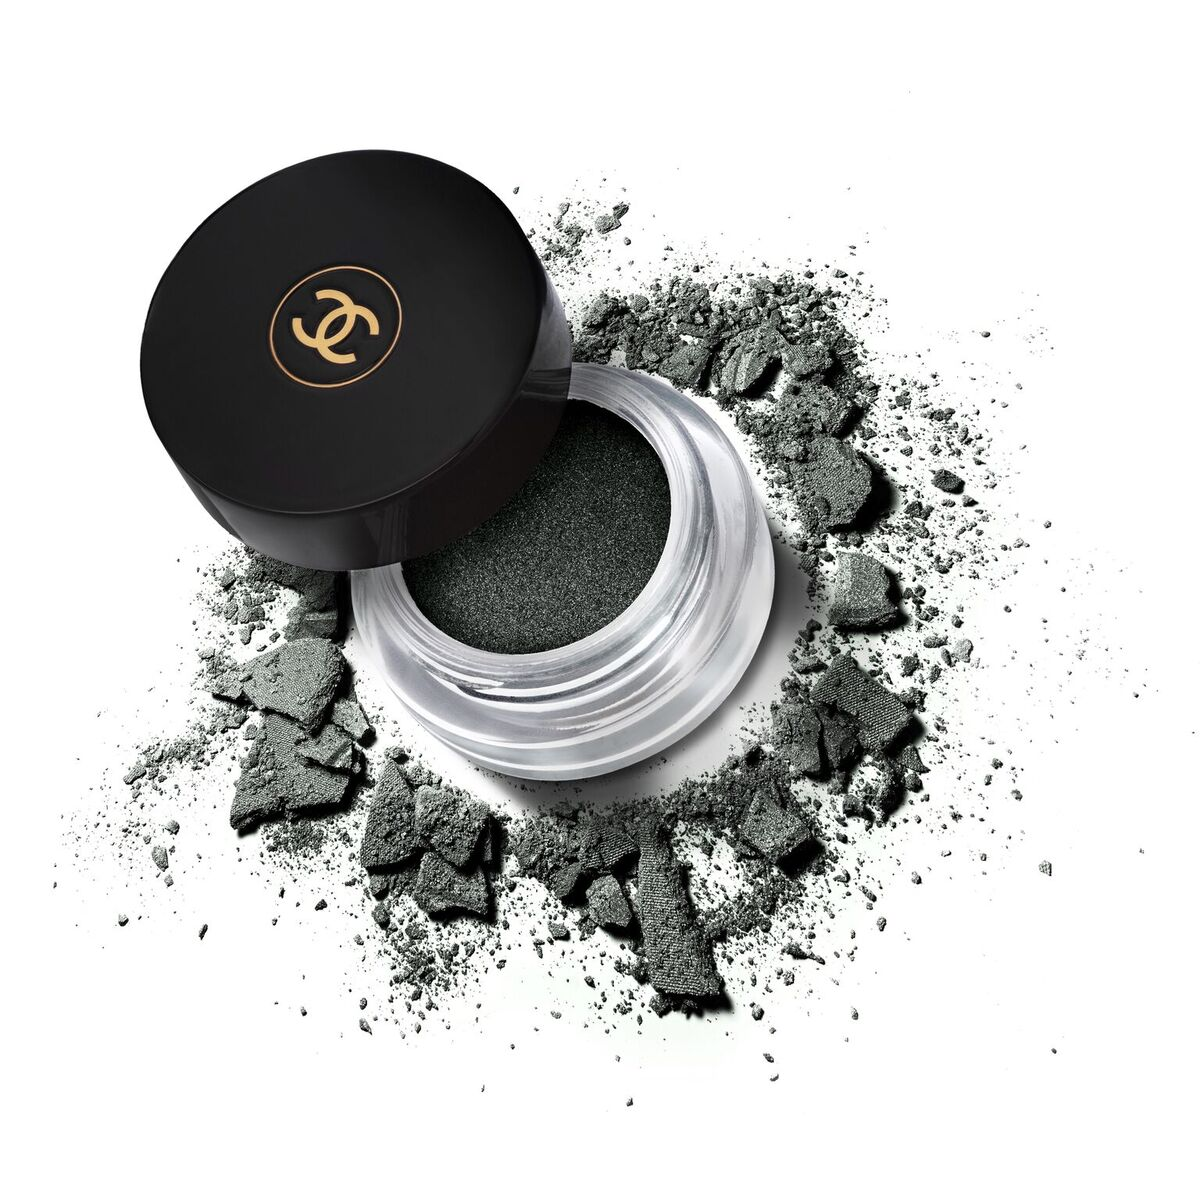 Close-up Chanel Eyeshadow Product Photography